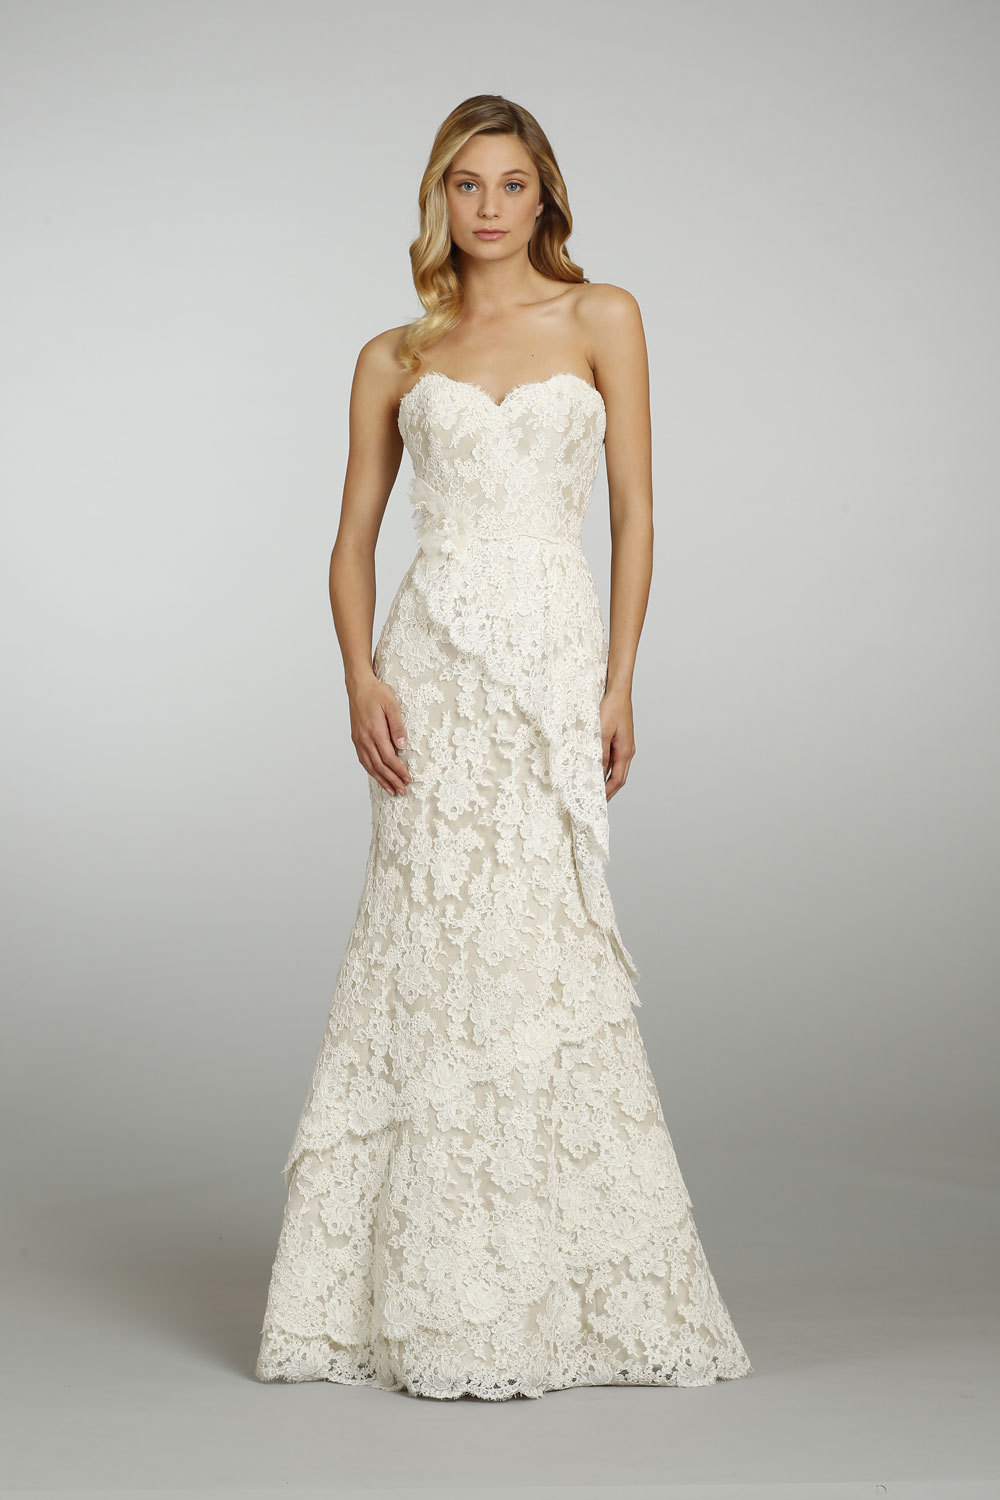 Spring-2013-wedding-dress-alvina-valenta-bridal-9305.full